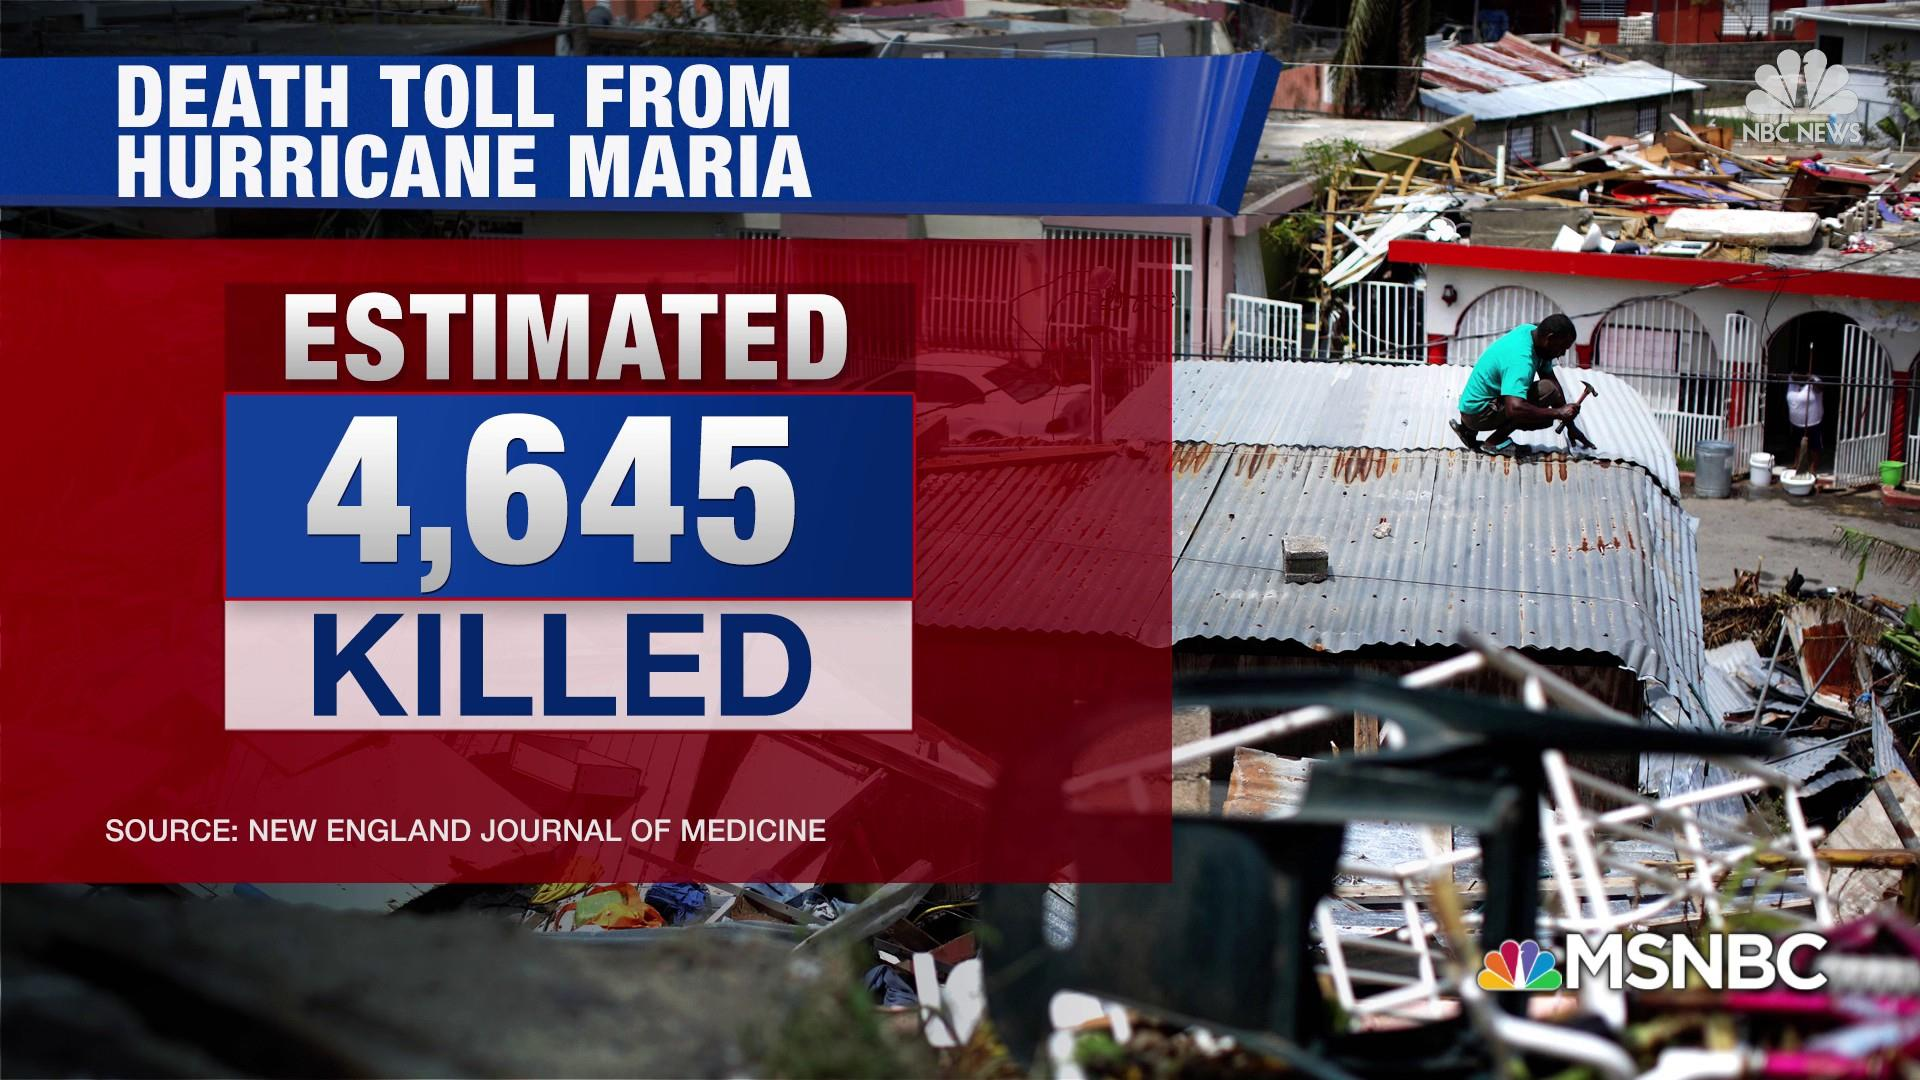 Maria death toll rises to 4,645 in Puerto Rico, new study says